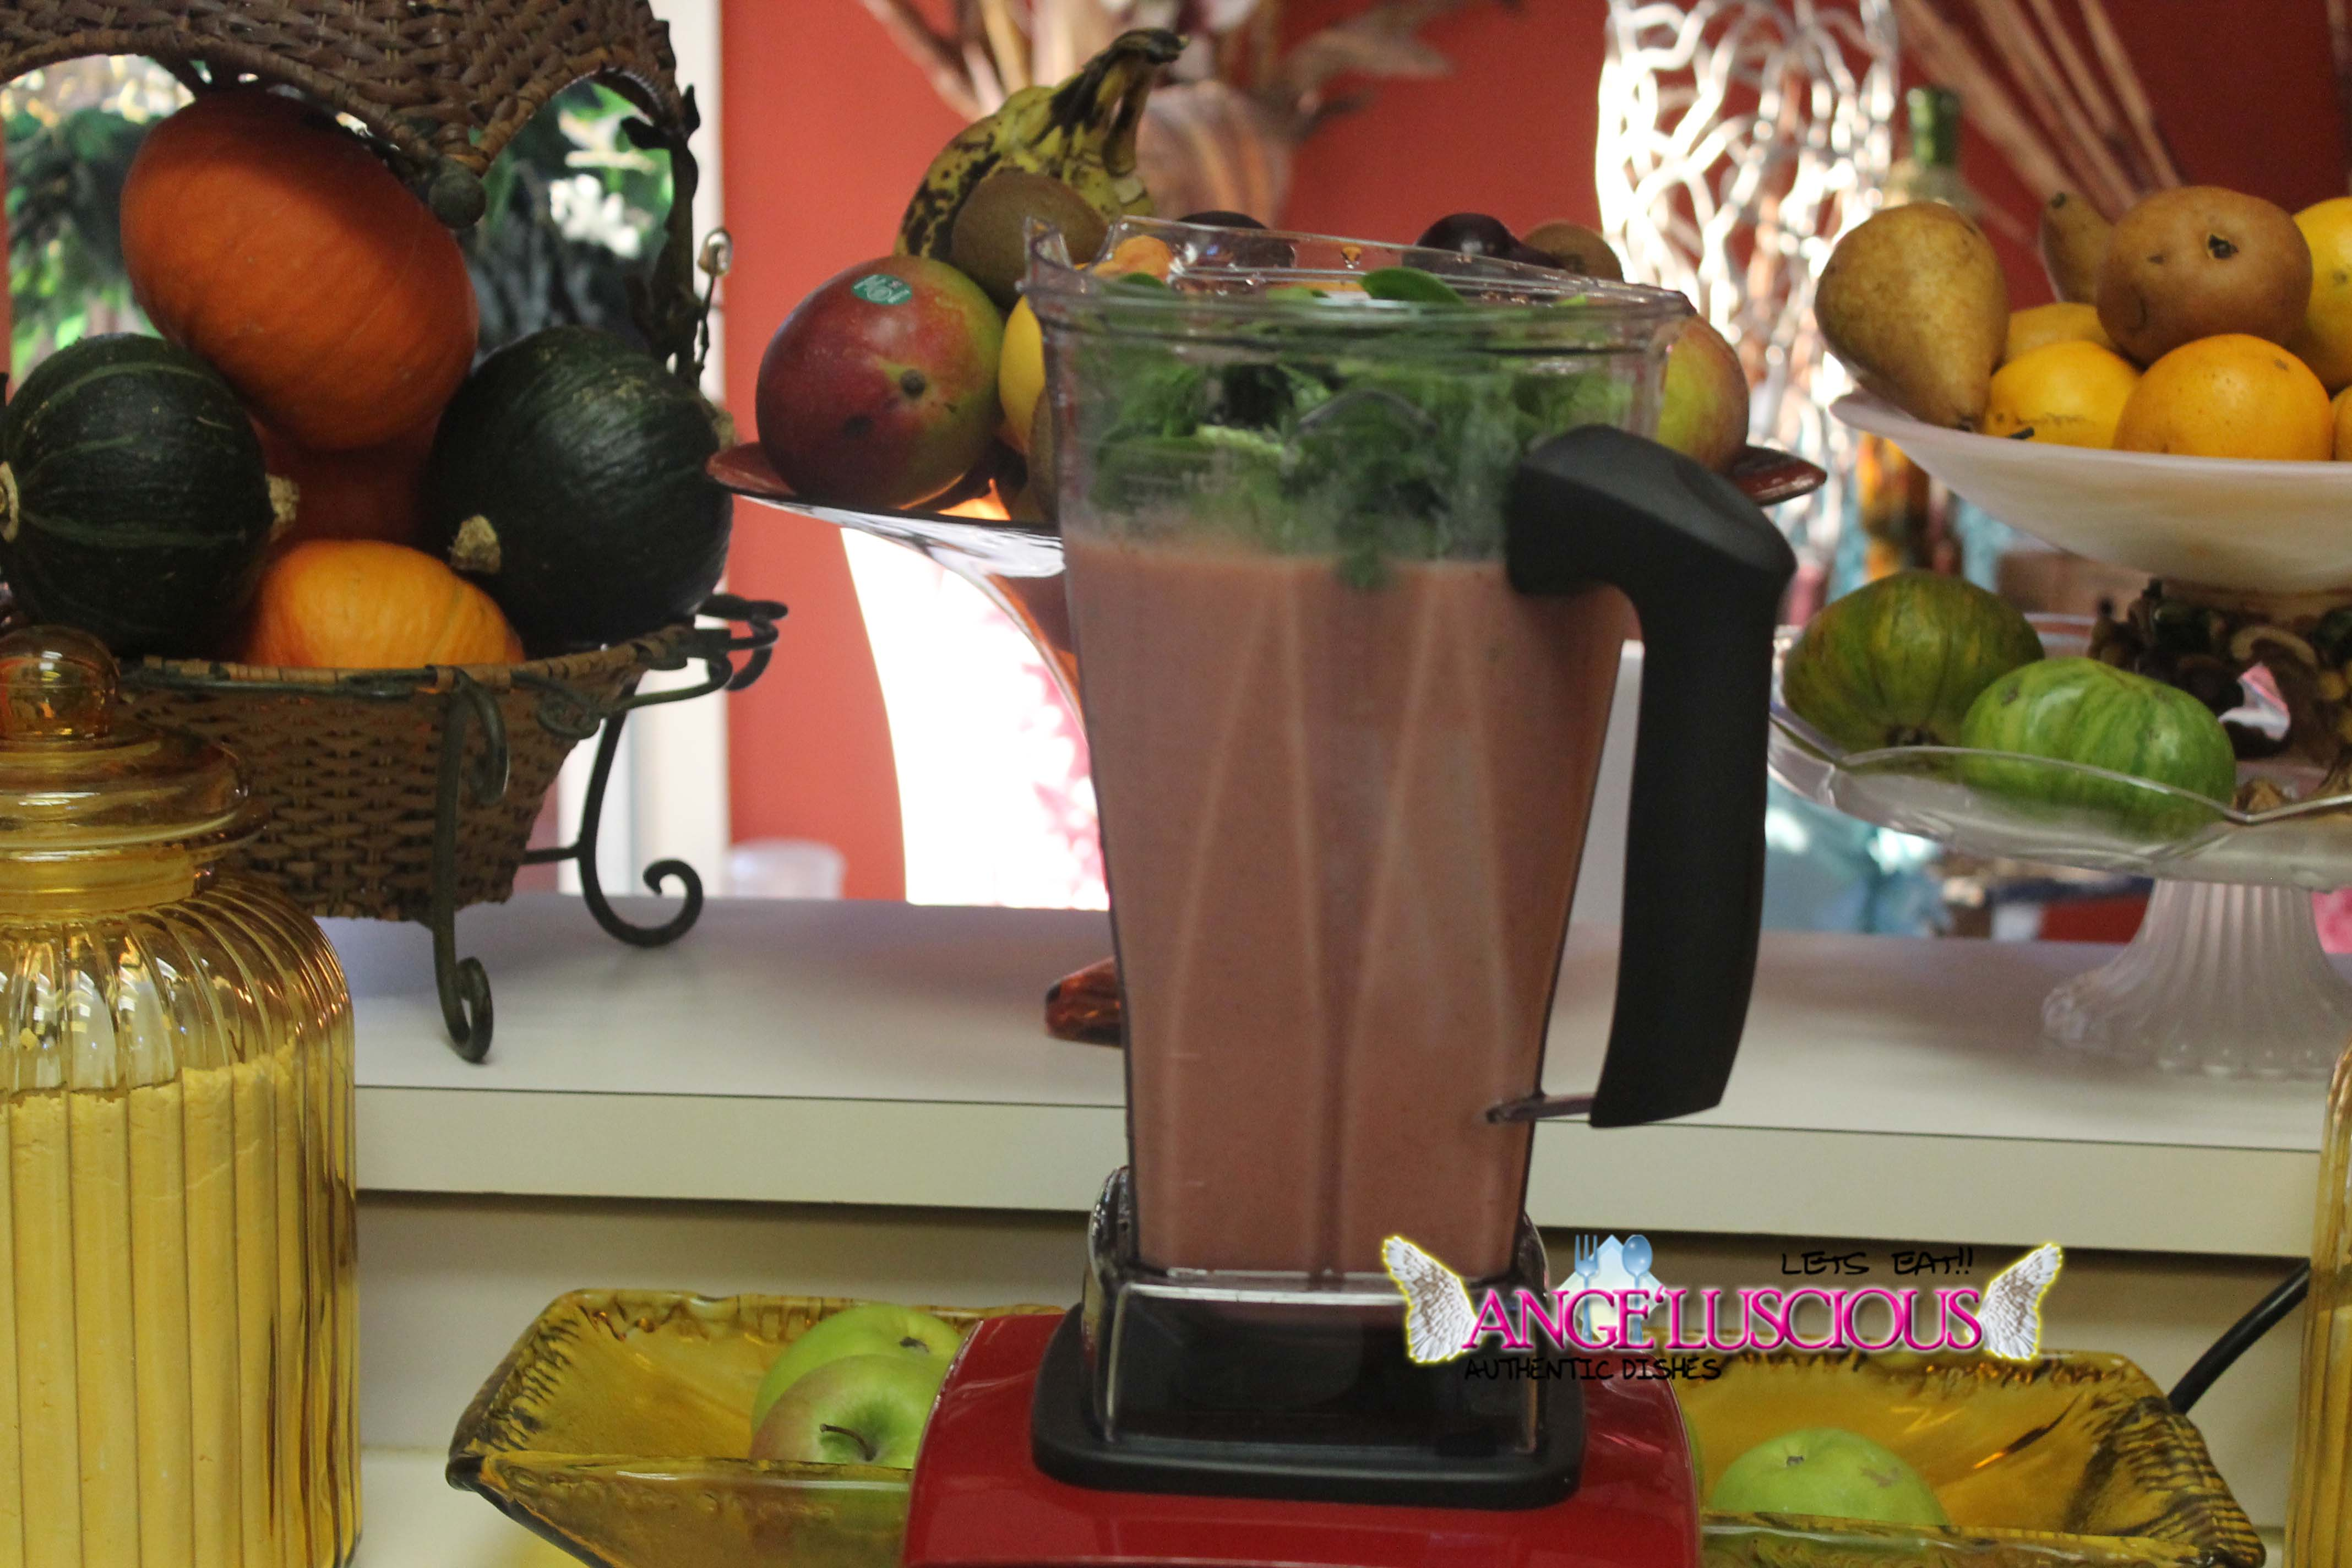 Awesome smoothie with spinach